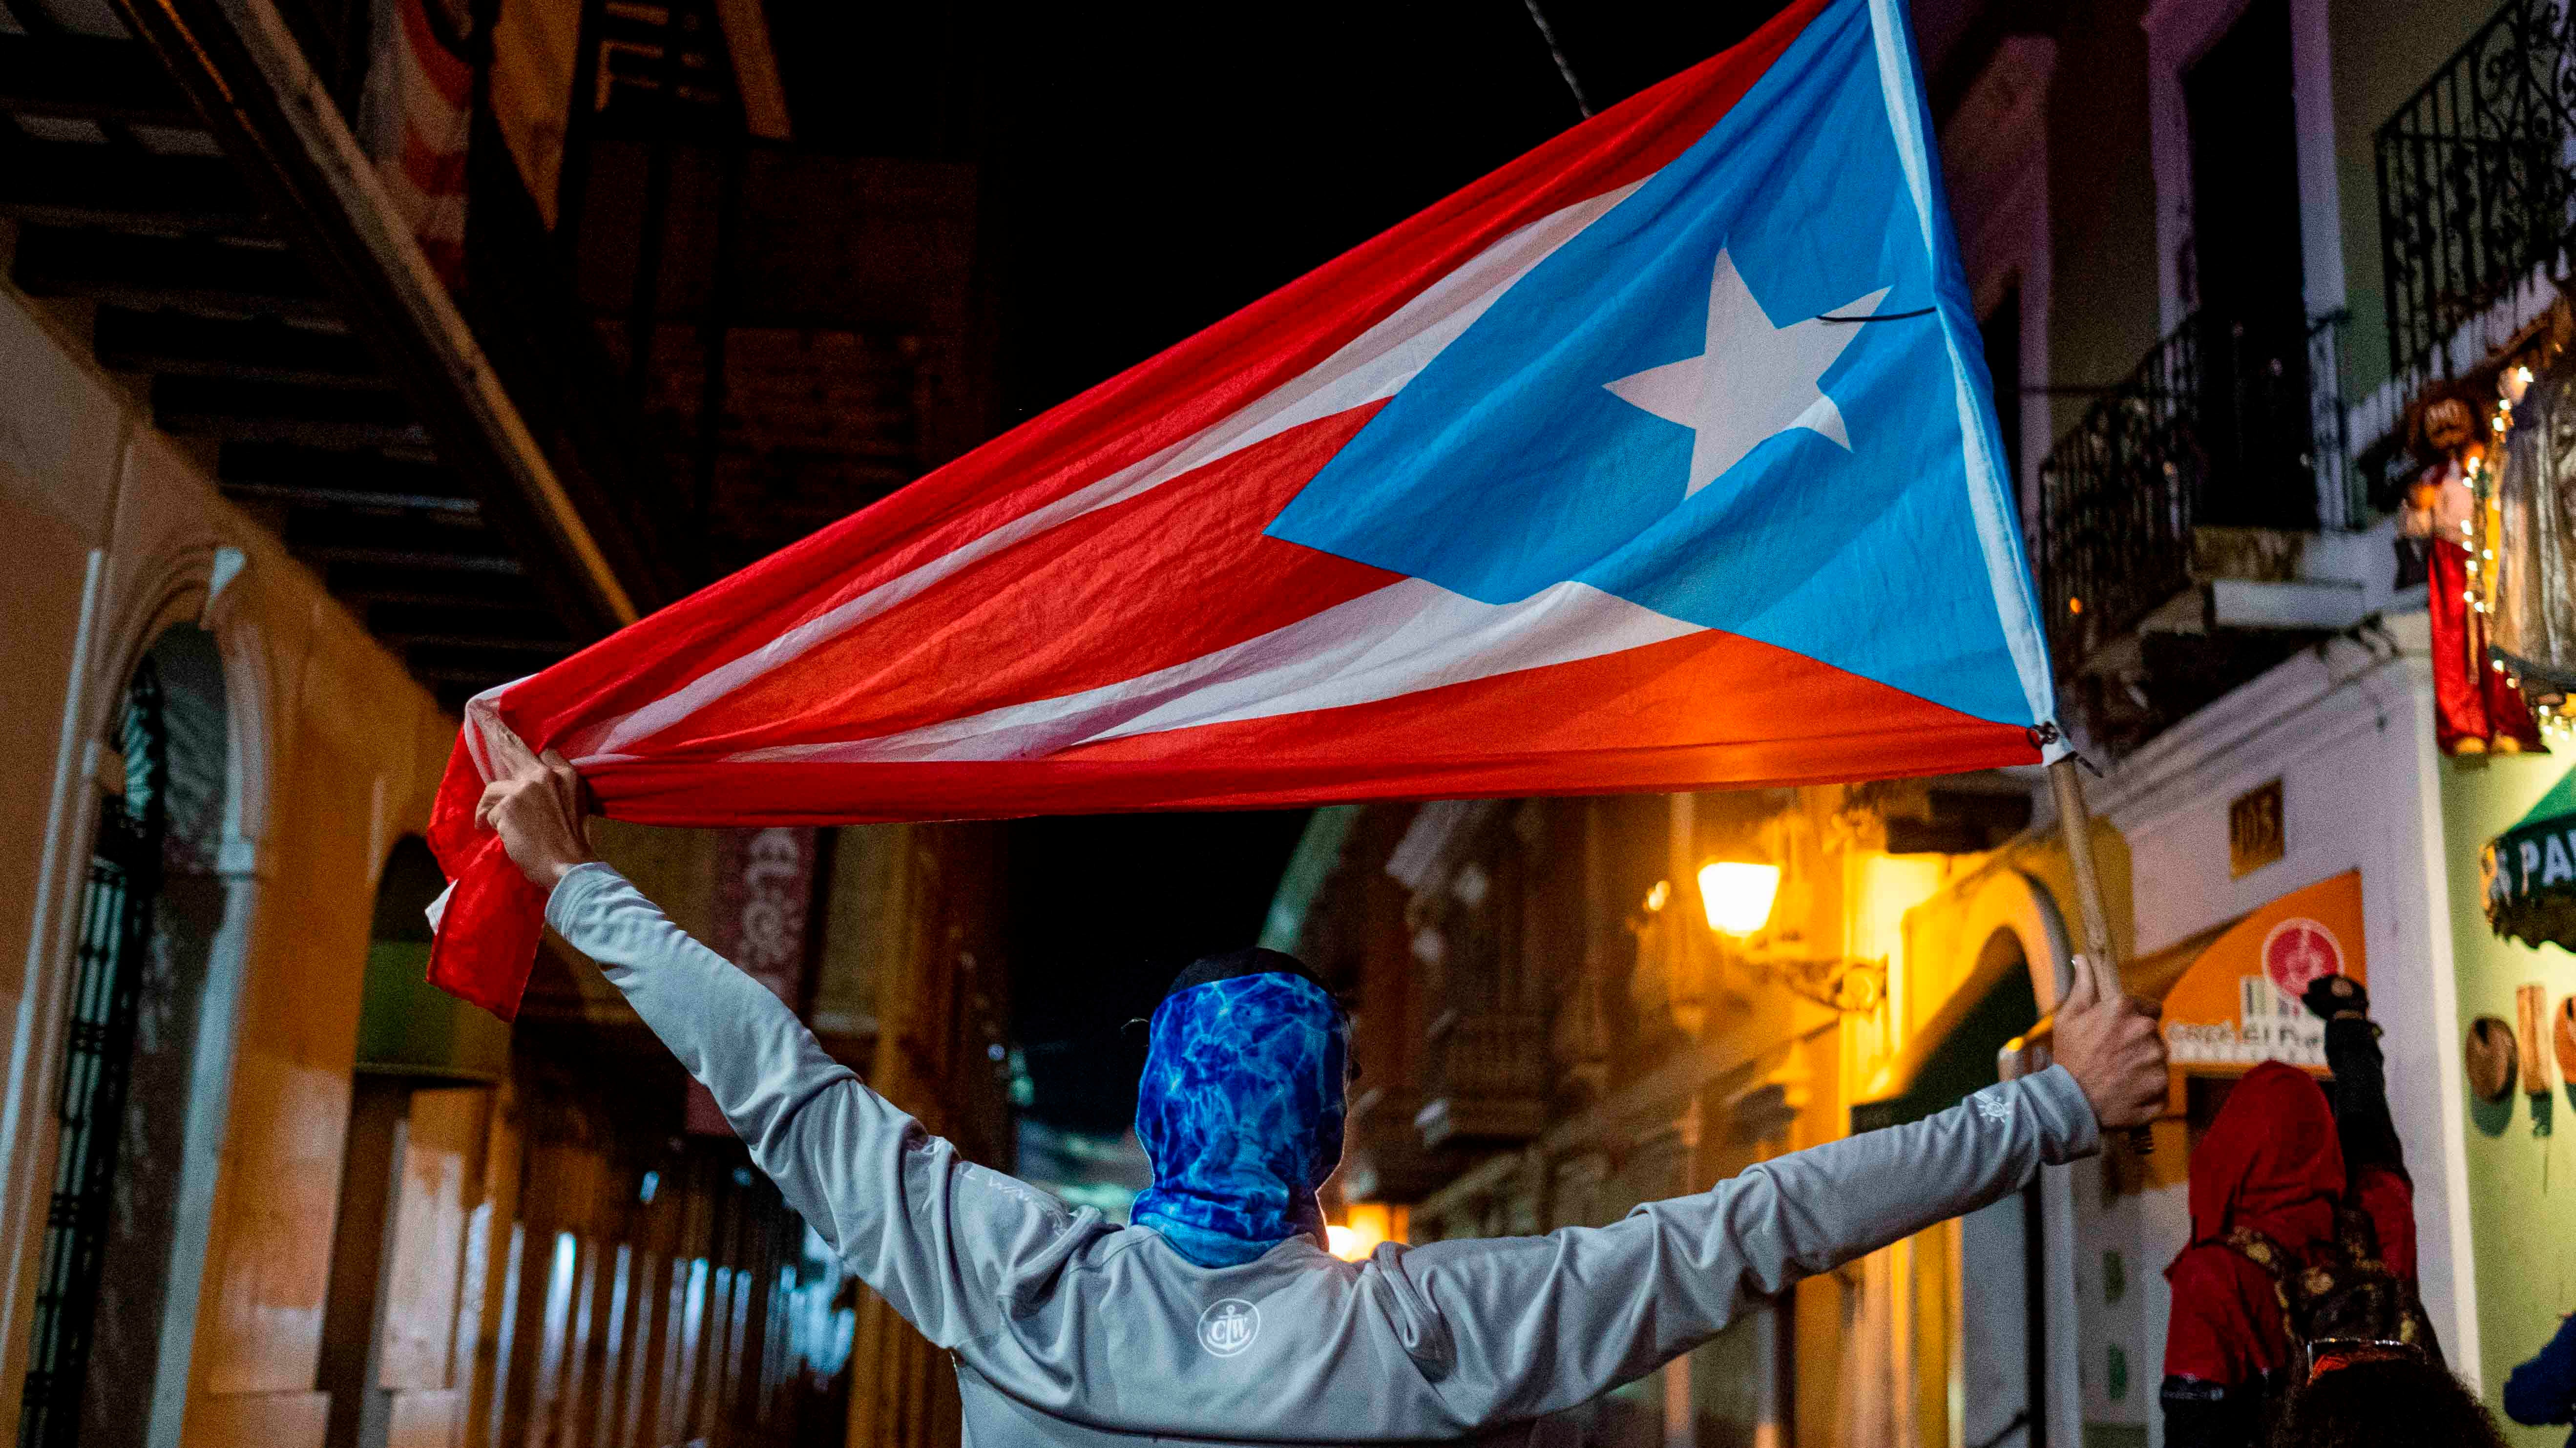 Puerto Rico Hurricane Maria Rebuilding Effort Doesn't Consider Potential Loss of Half Its Population, New Research Says